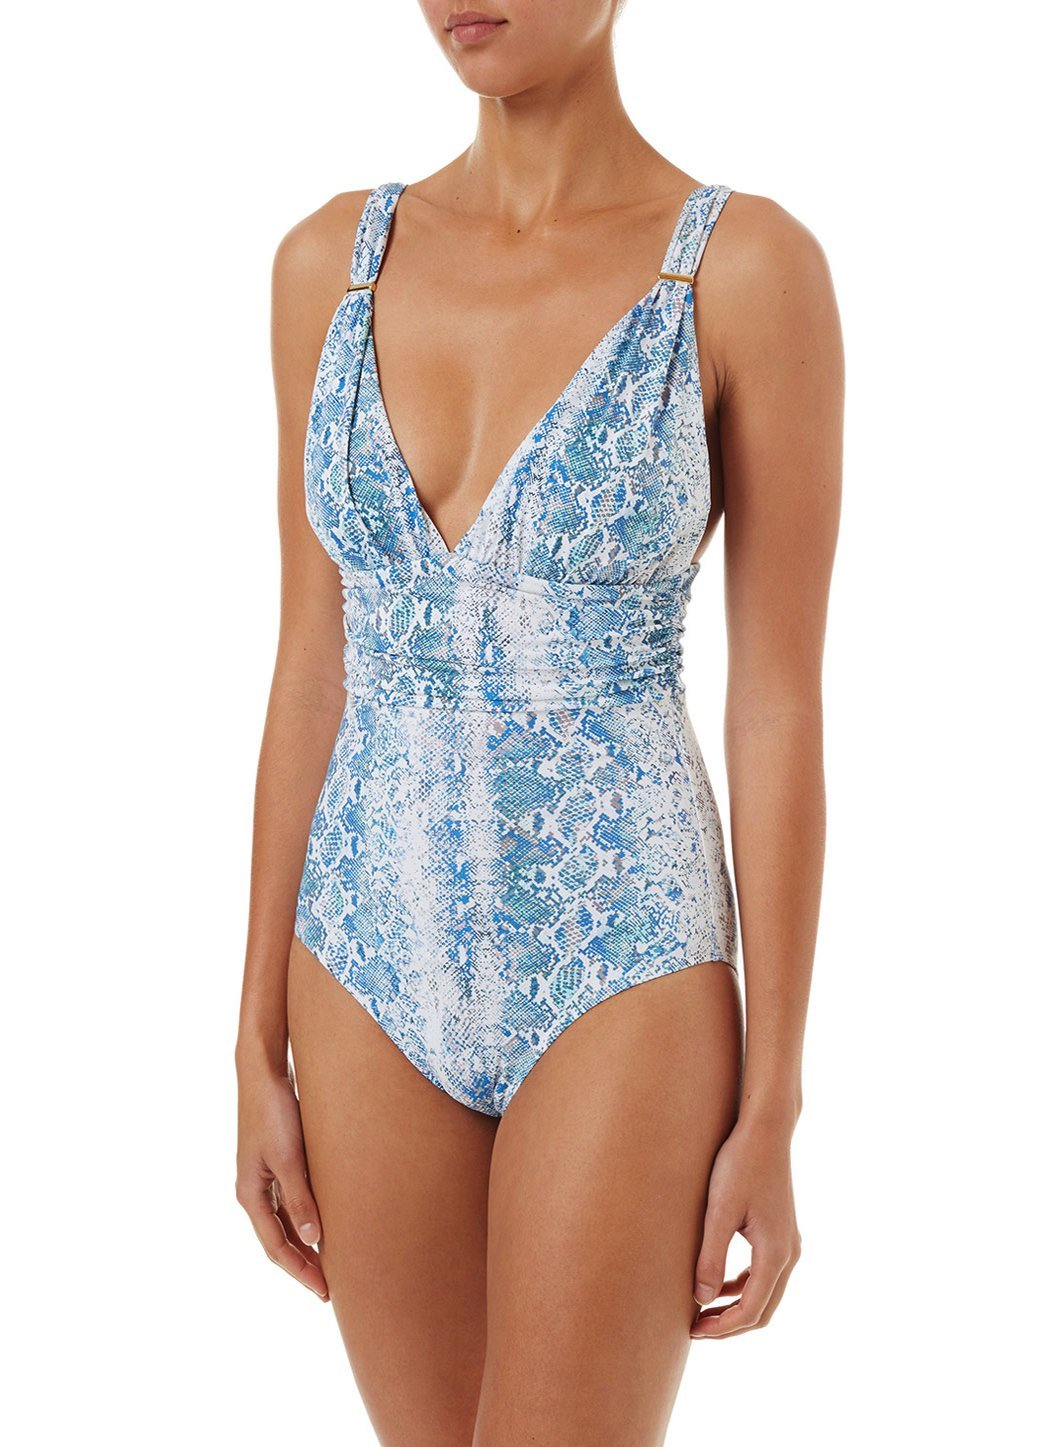 panarea serpente classic overtheshoulder ruched onepiece swimsuit 2019 F